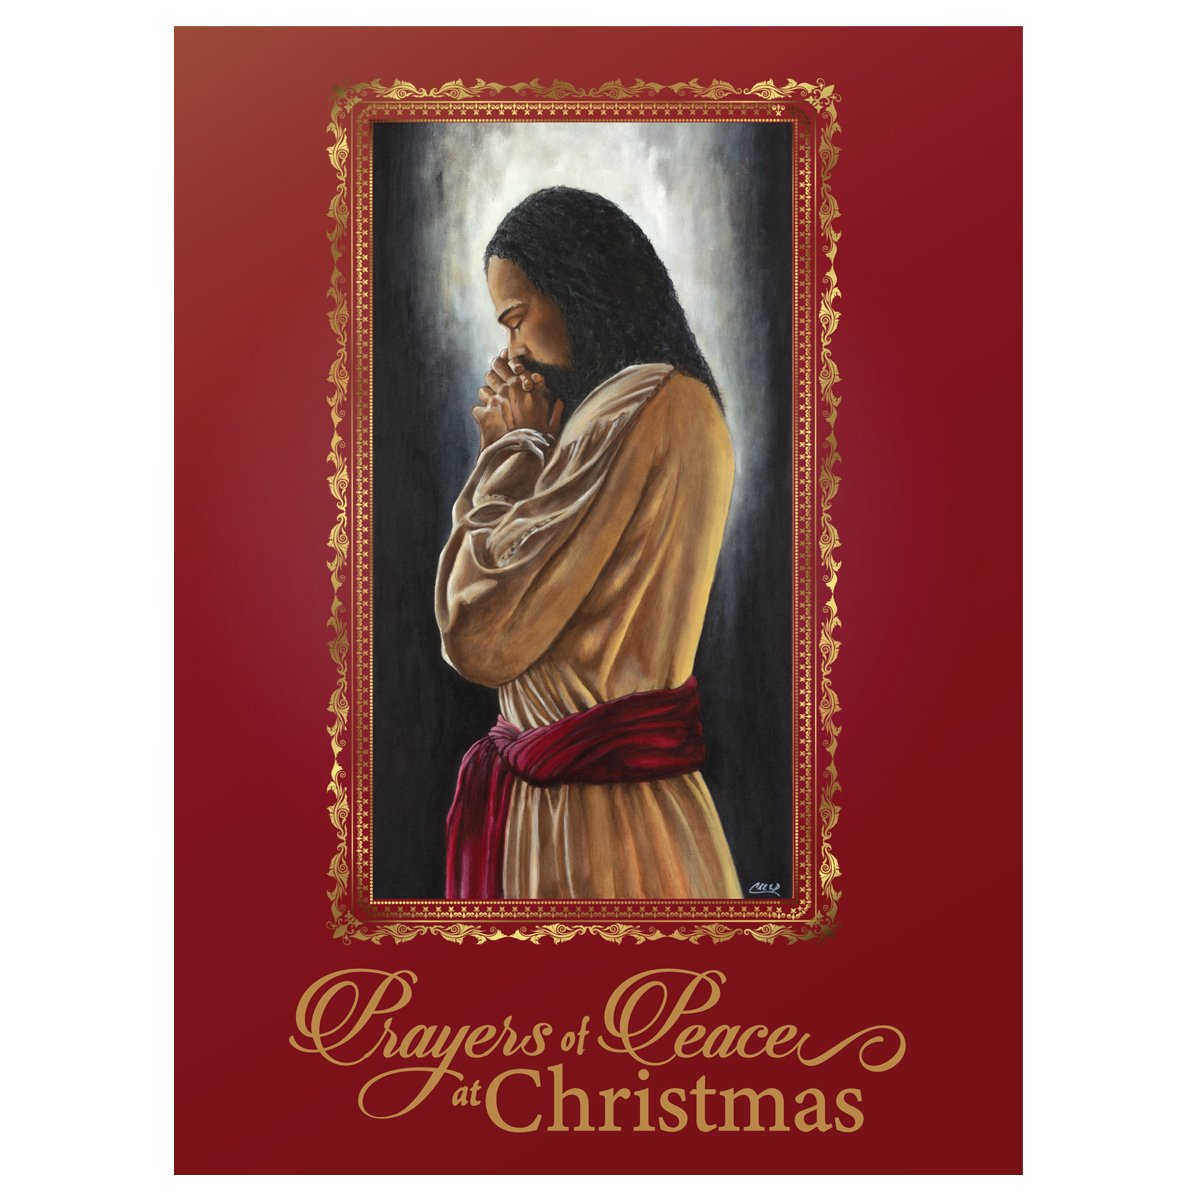 Prayers of Peace by CREED: African American Christmas Card Box Set